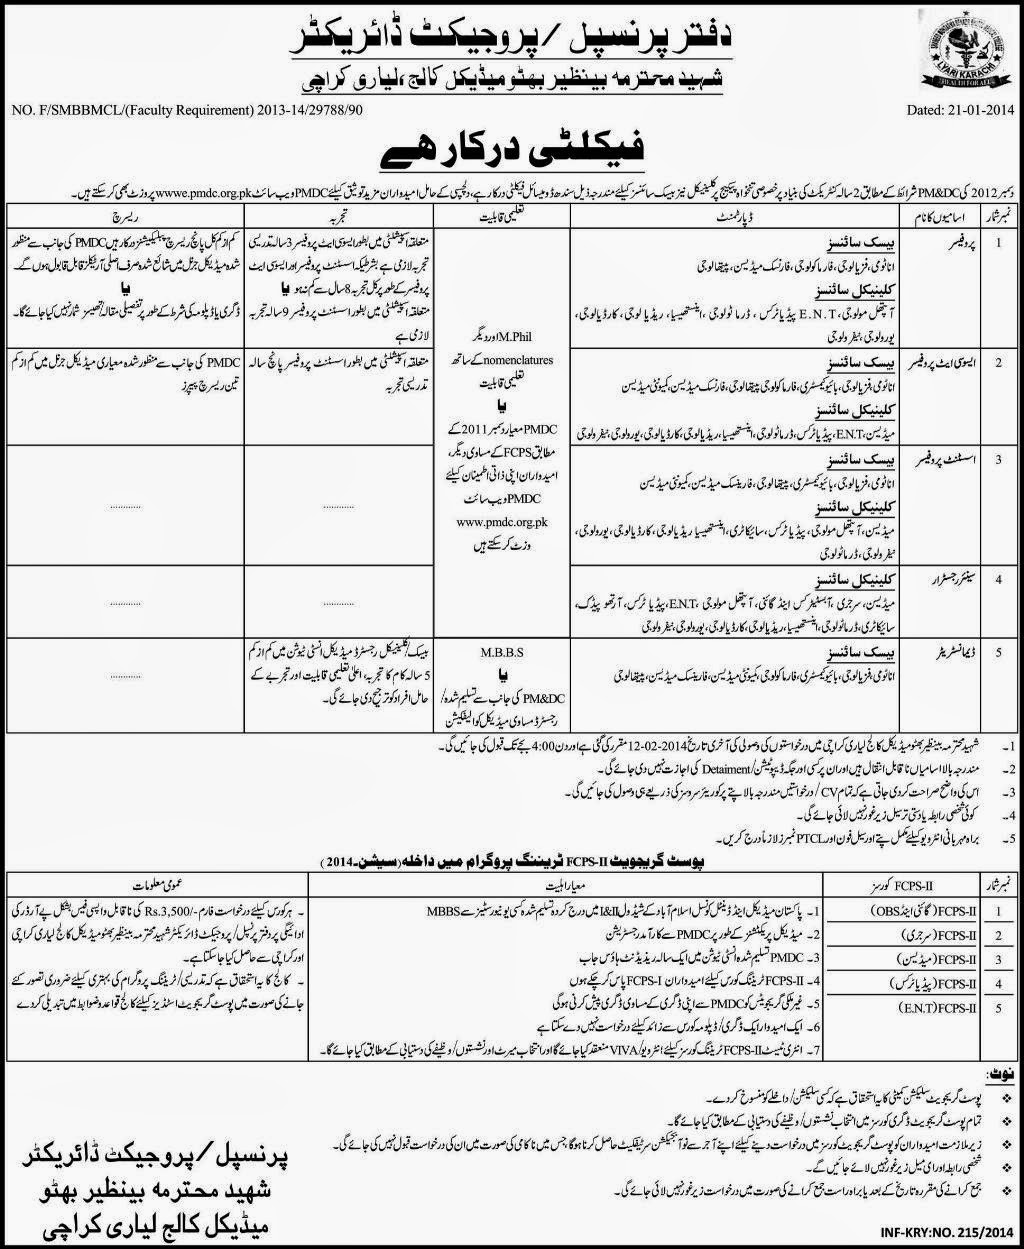 Vacancies in Shaheed Mohtarma Benazir Bhutto Medical College, Karachi